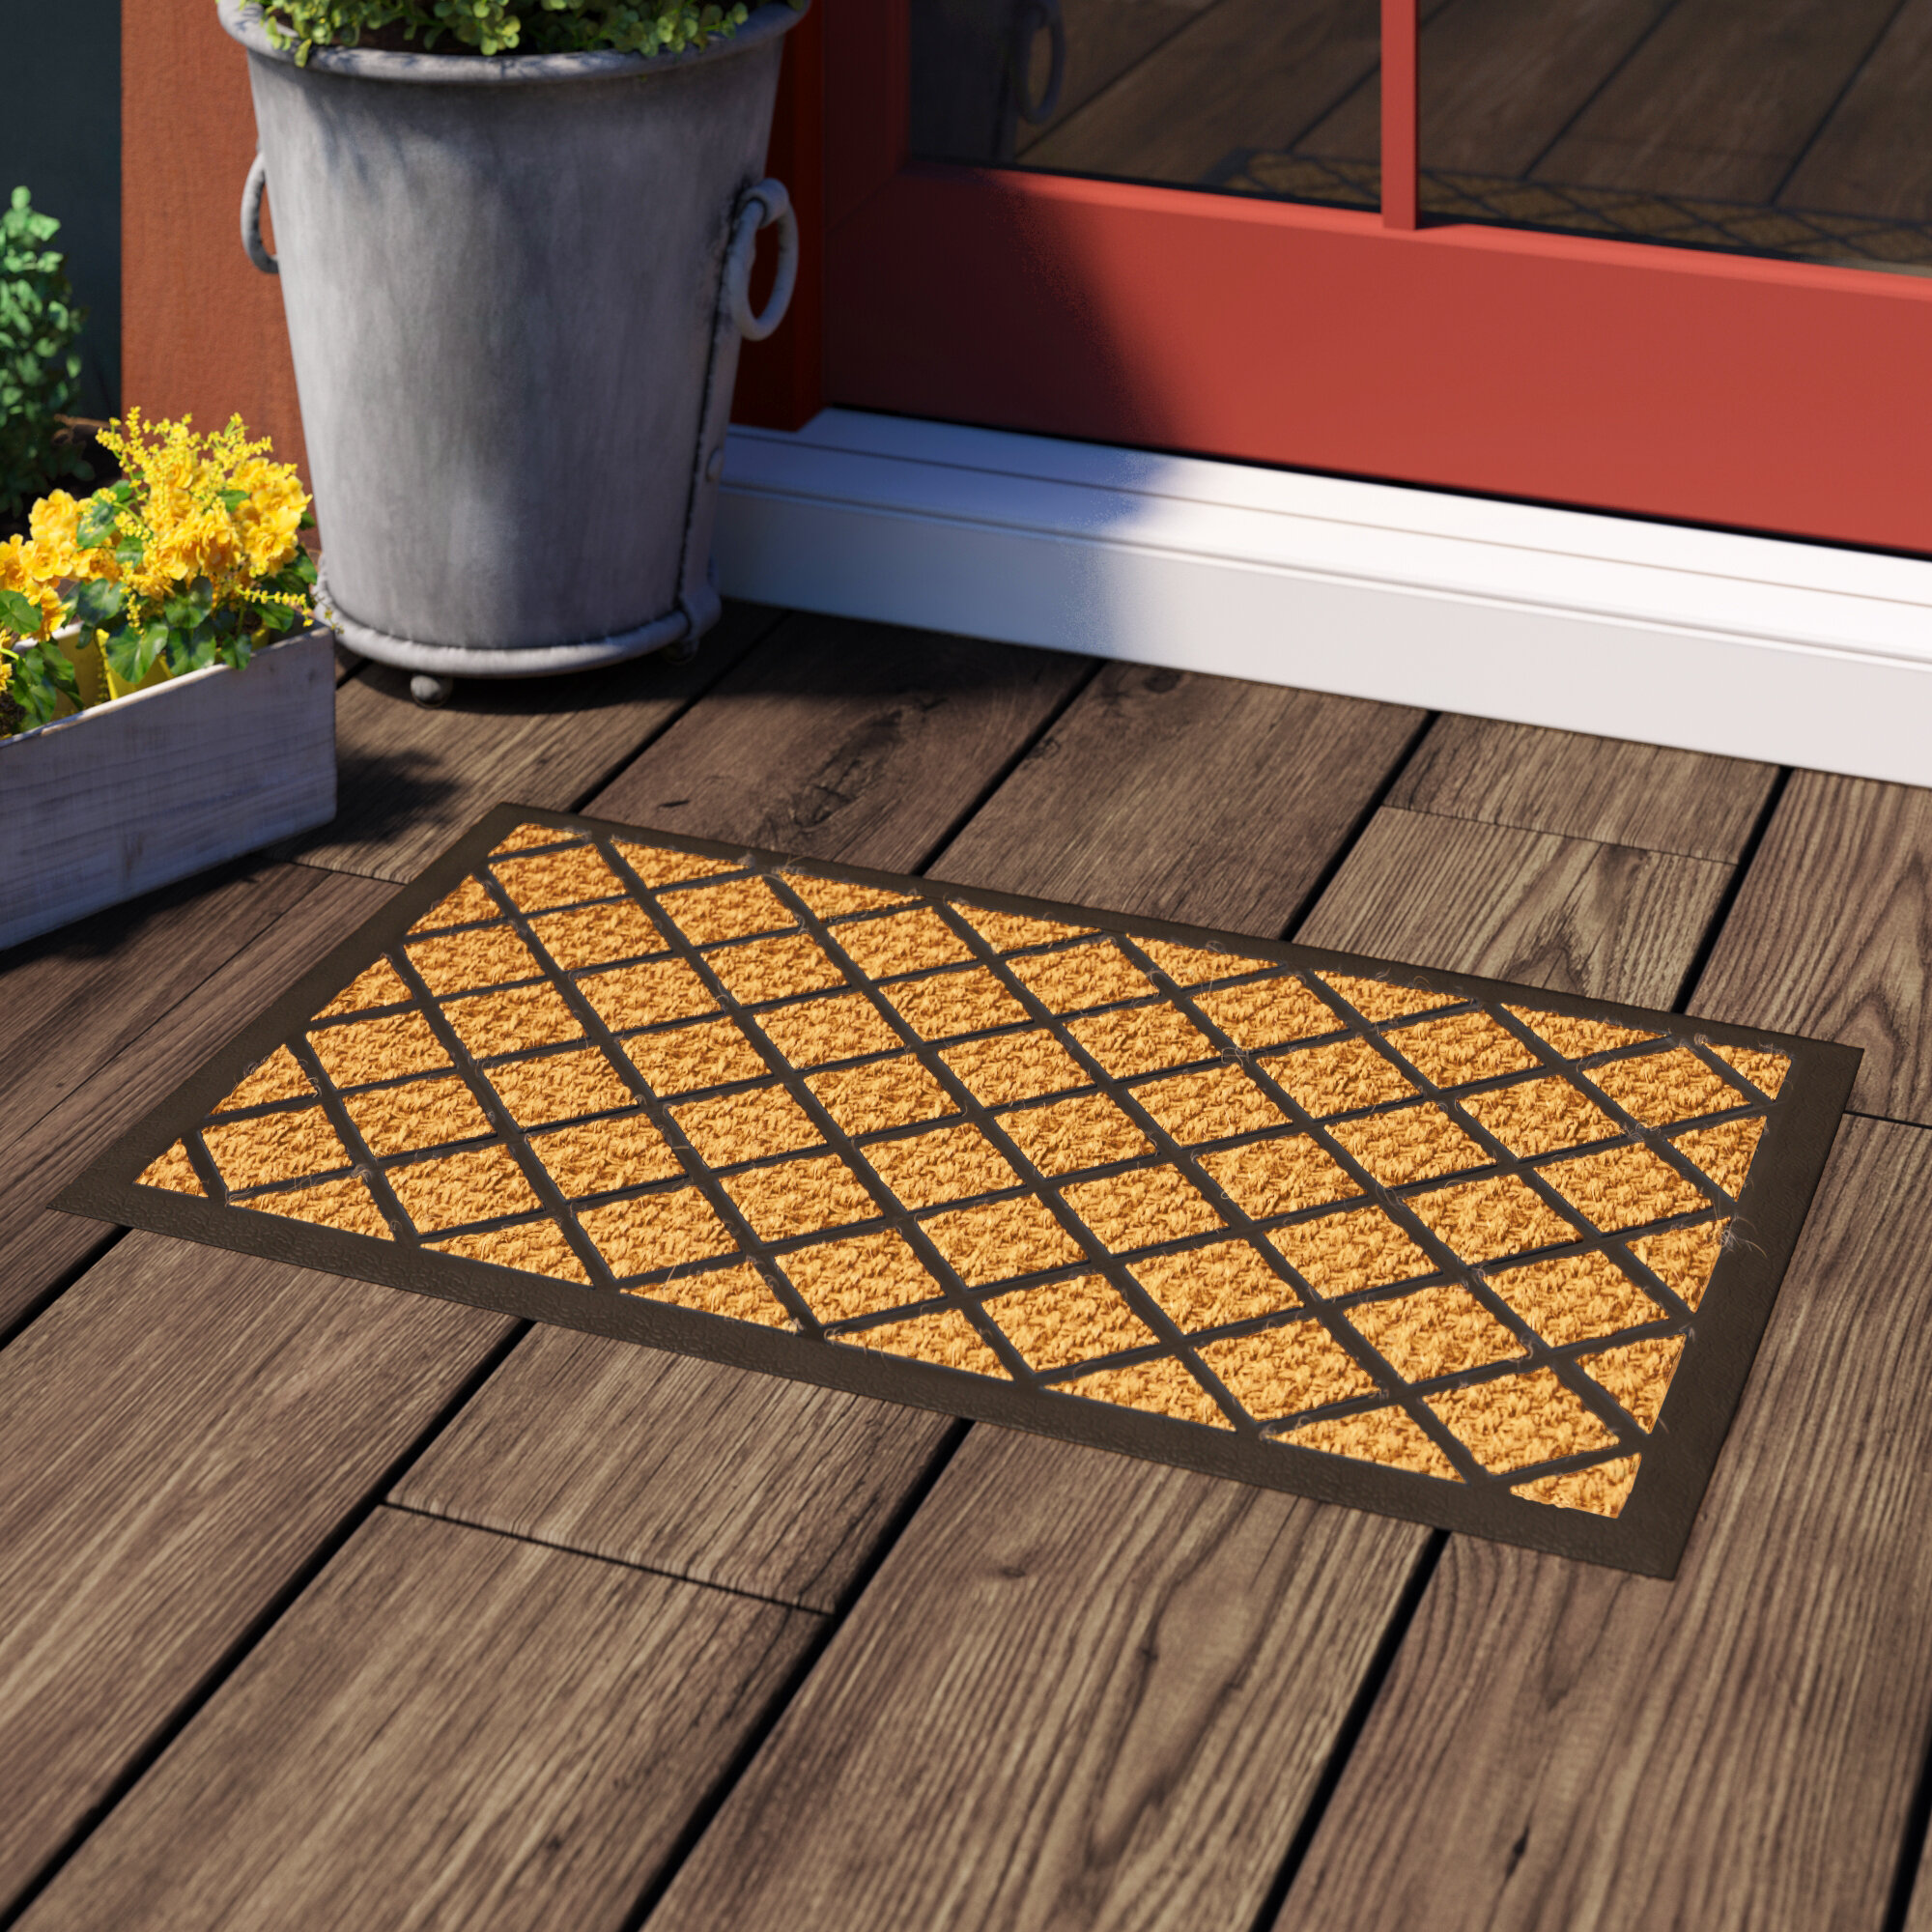 Red Barrel Studio Laurita Entry 30 In X 18 In Non Slip Outdoor Door Mat Reviews Wayfair